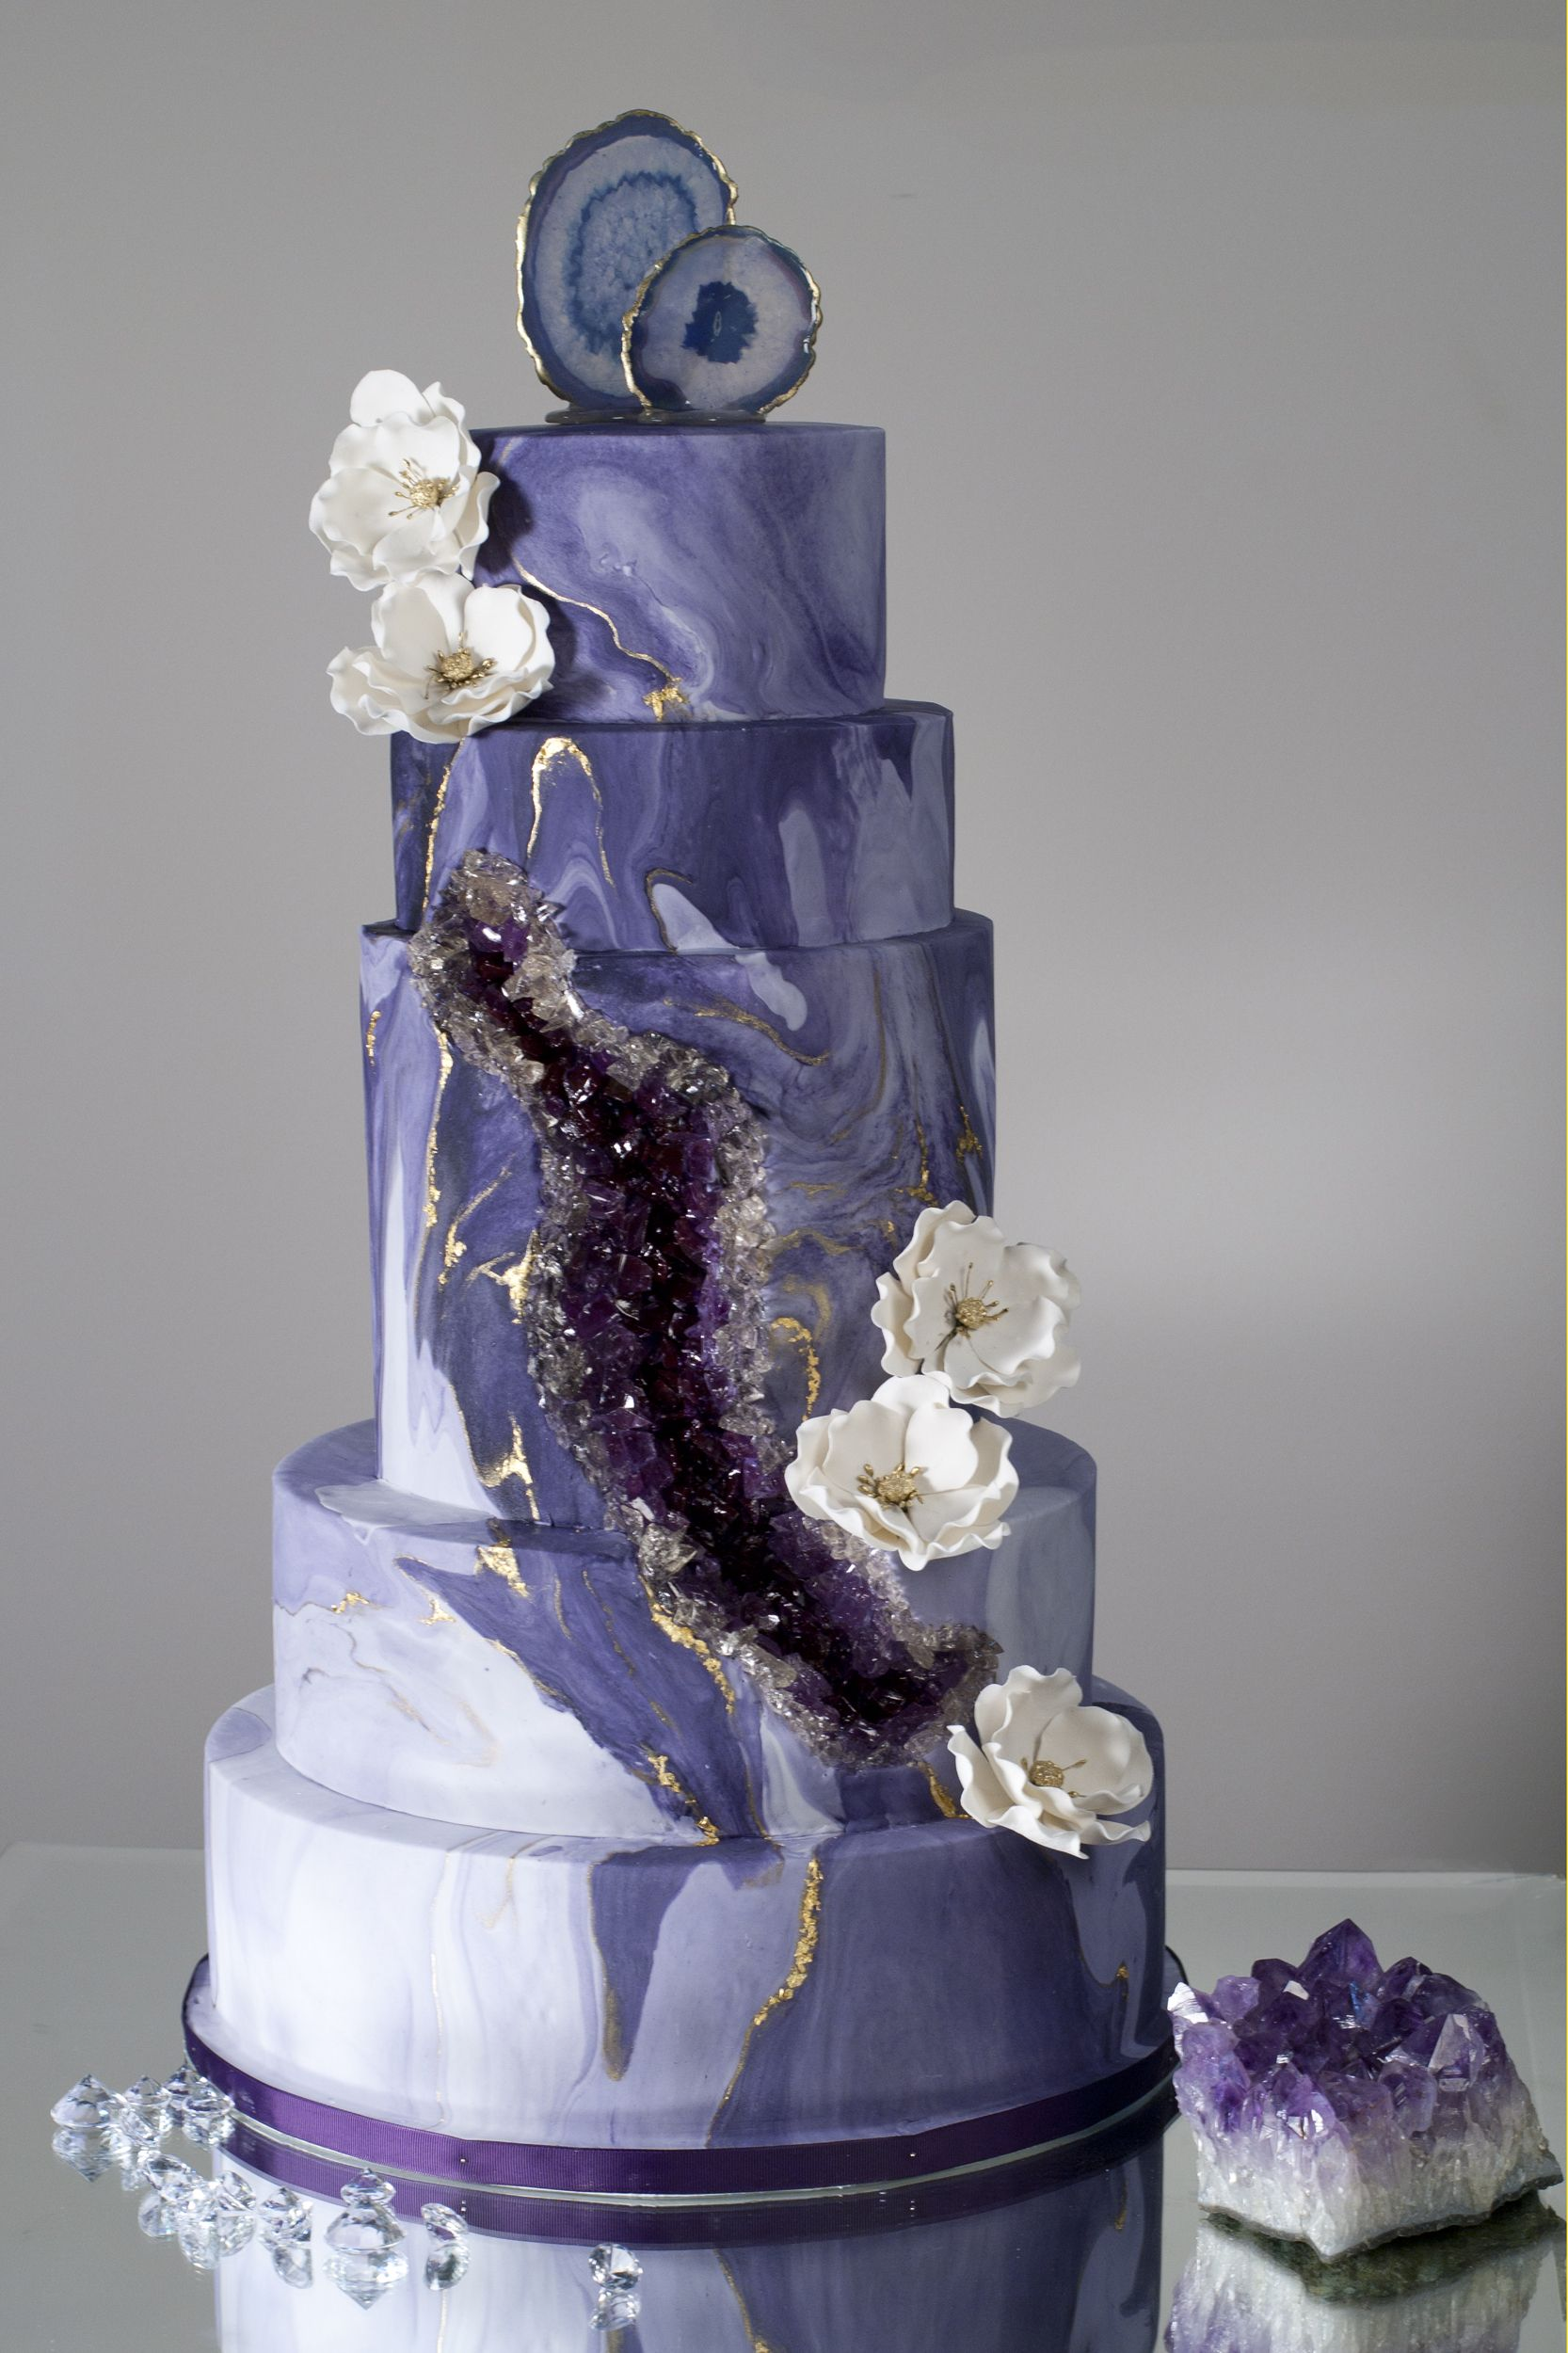 Geode Wedding Cake.Custom Wedding Cakes For The Love Of Cake Shop In Store Or